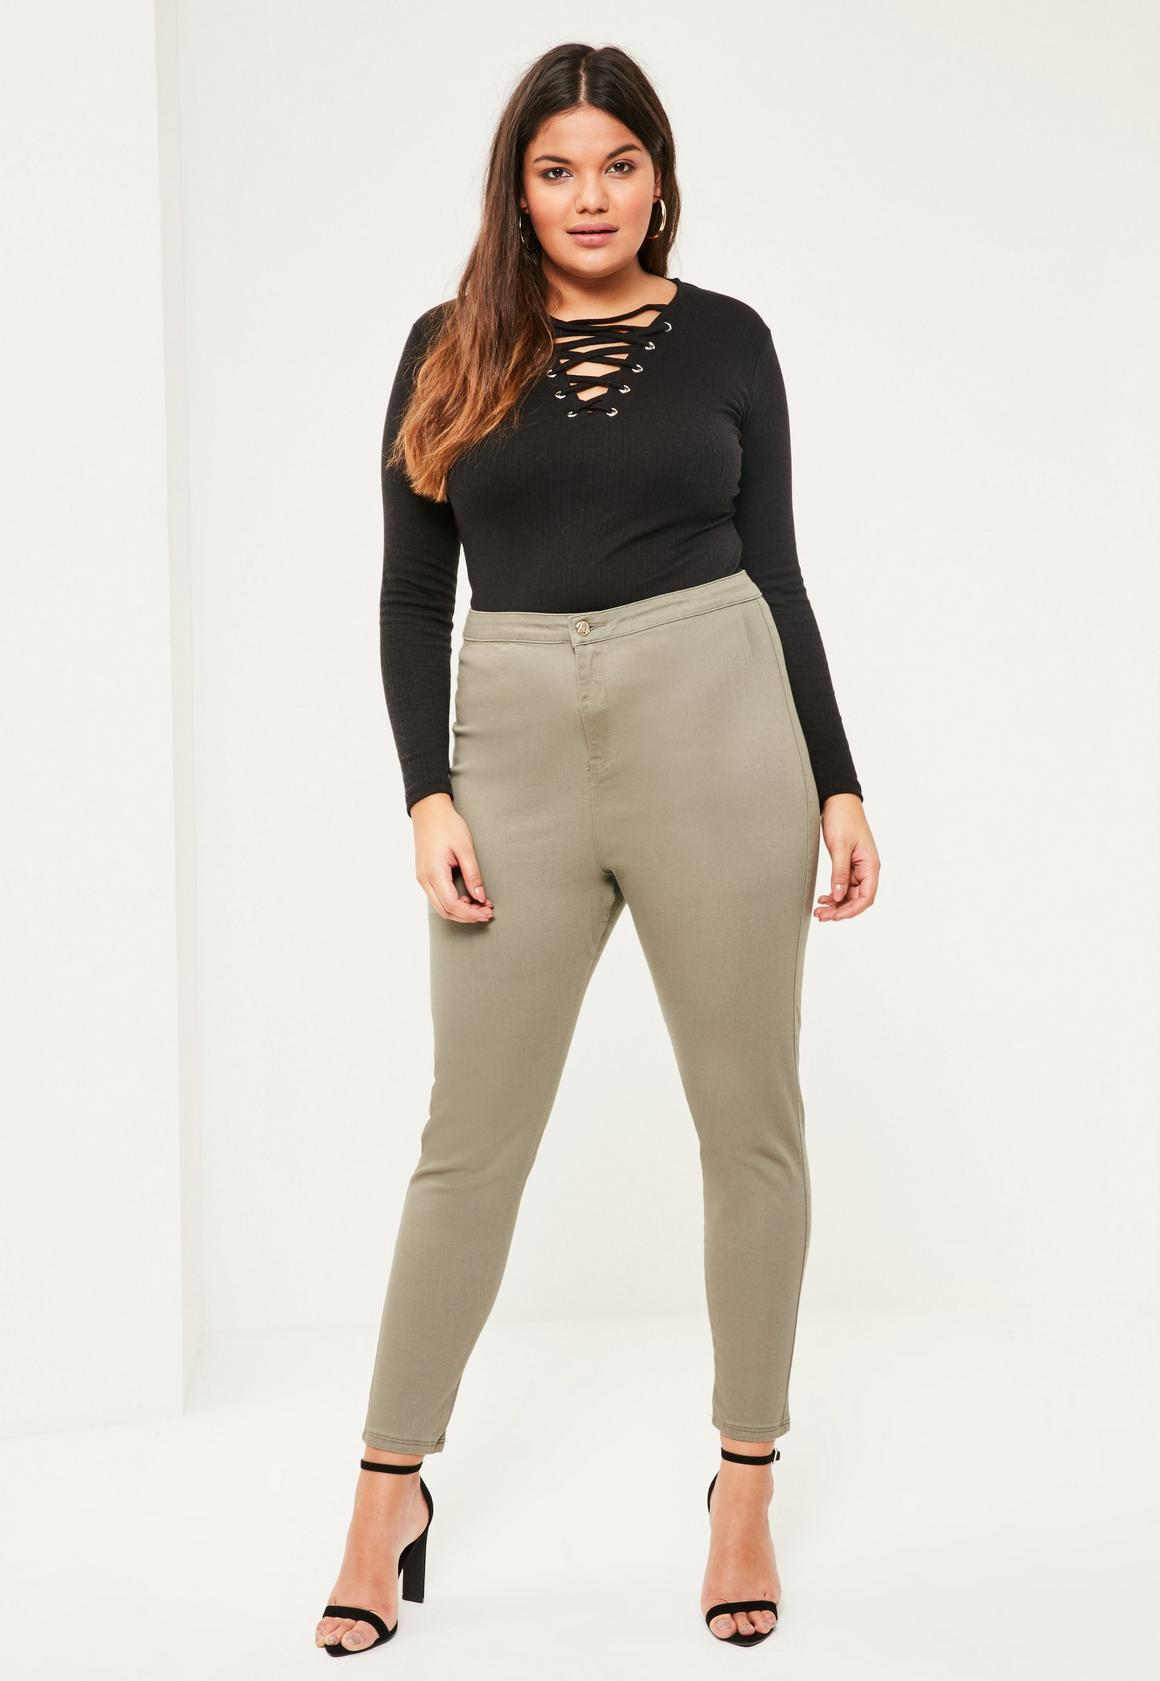 Plus Size Vice Khaki High Waisted Skinny Jeans. Previous Next - Plus Size Vice Khaki High Waisted Skinny Jeans Missguided